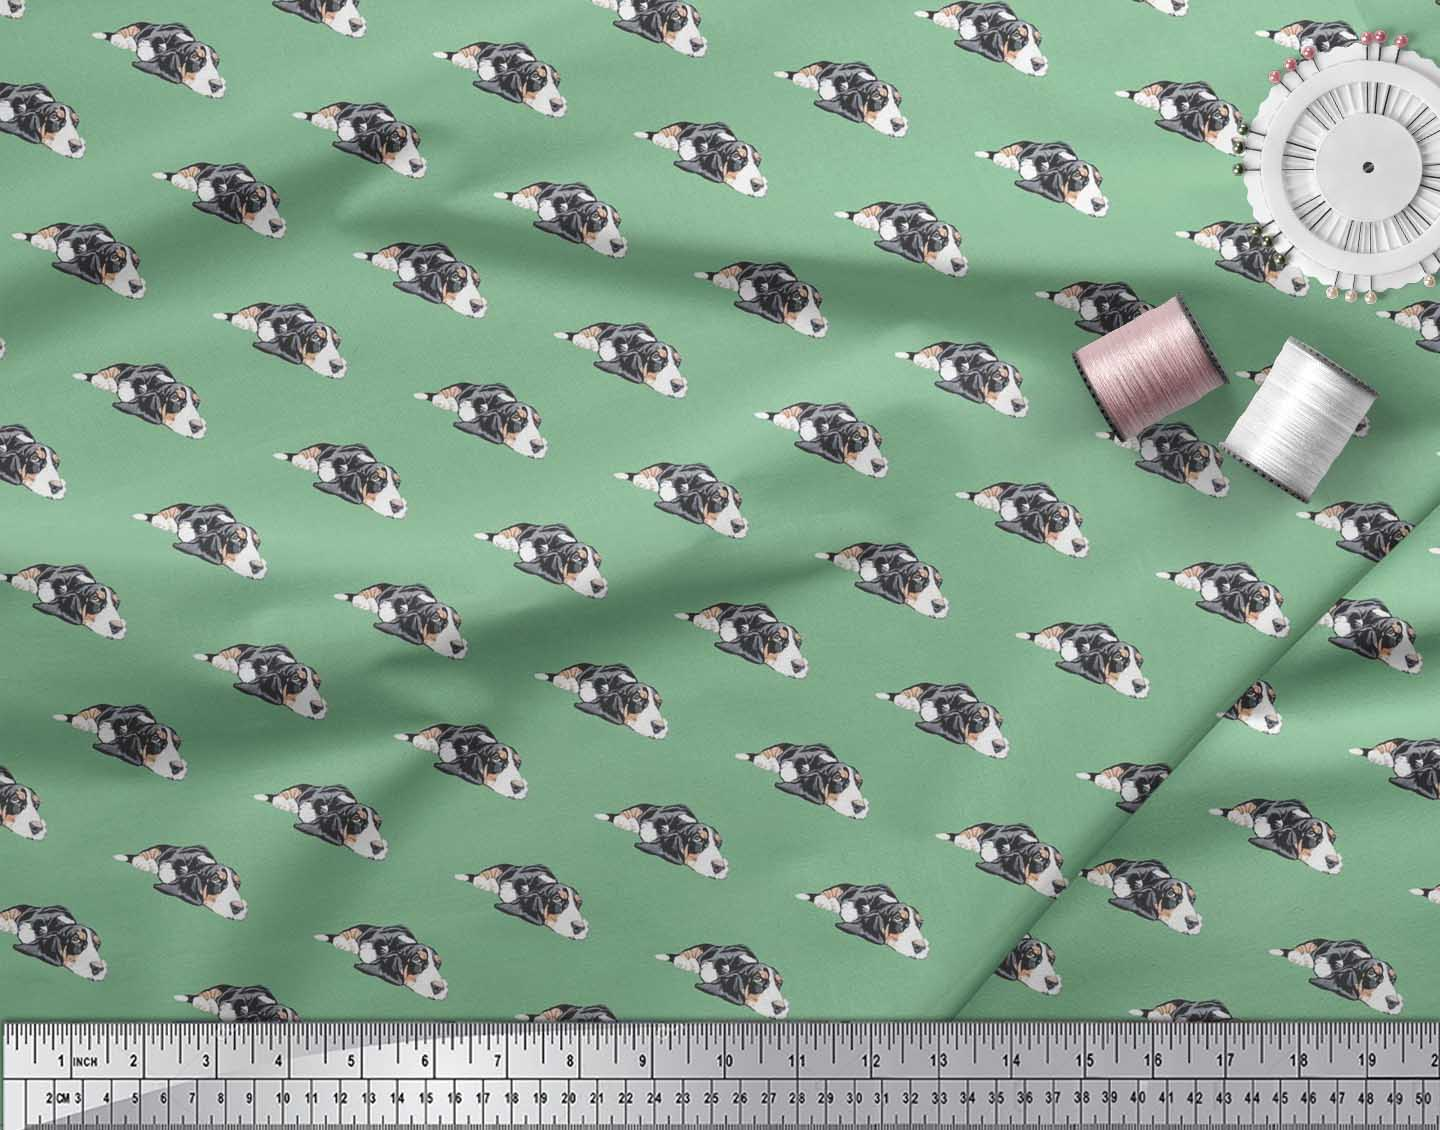 Soimoi-Green-Cotton-Poplin-Fabric-Basset-Hound-Dog-Fabric-Prints-5tW thumbnail 4